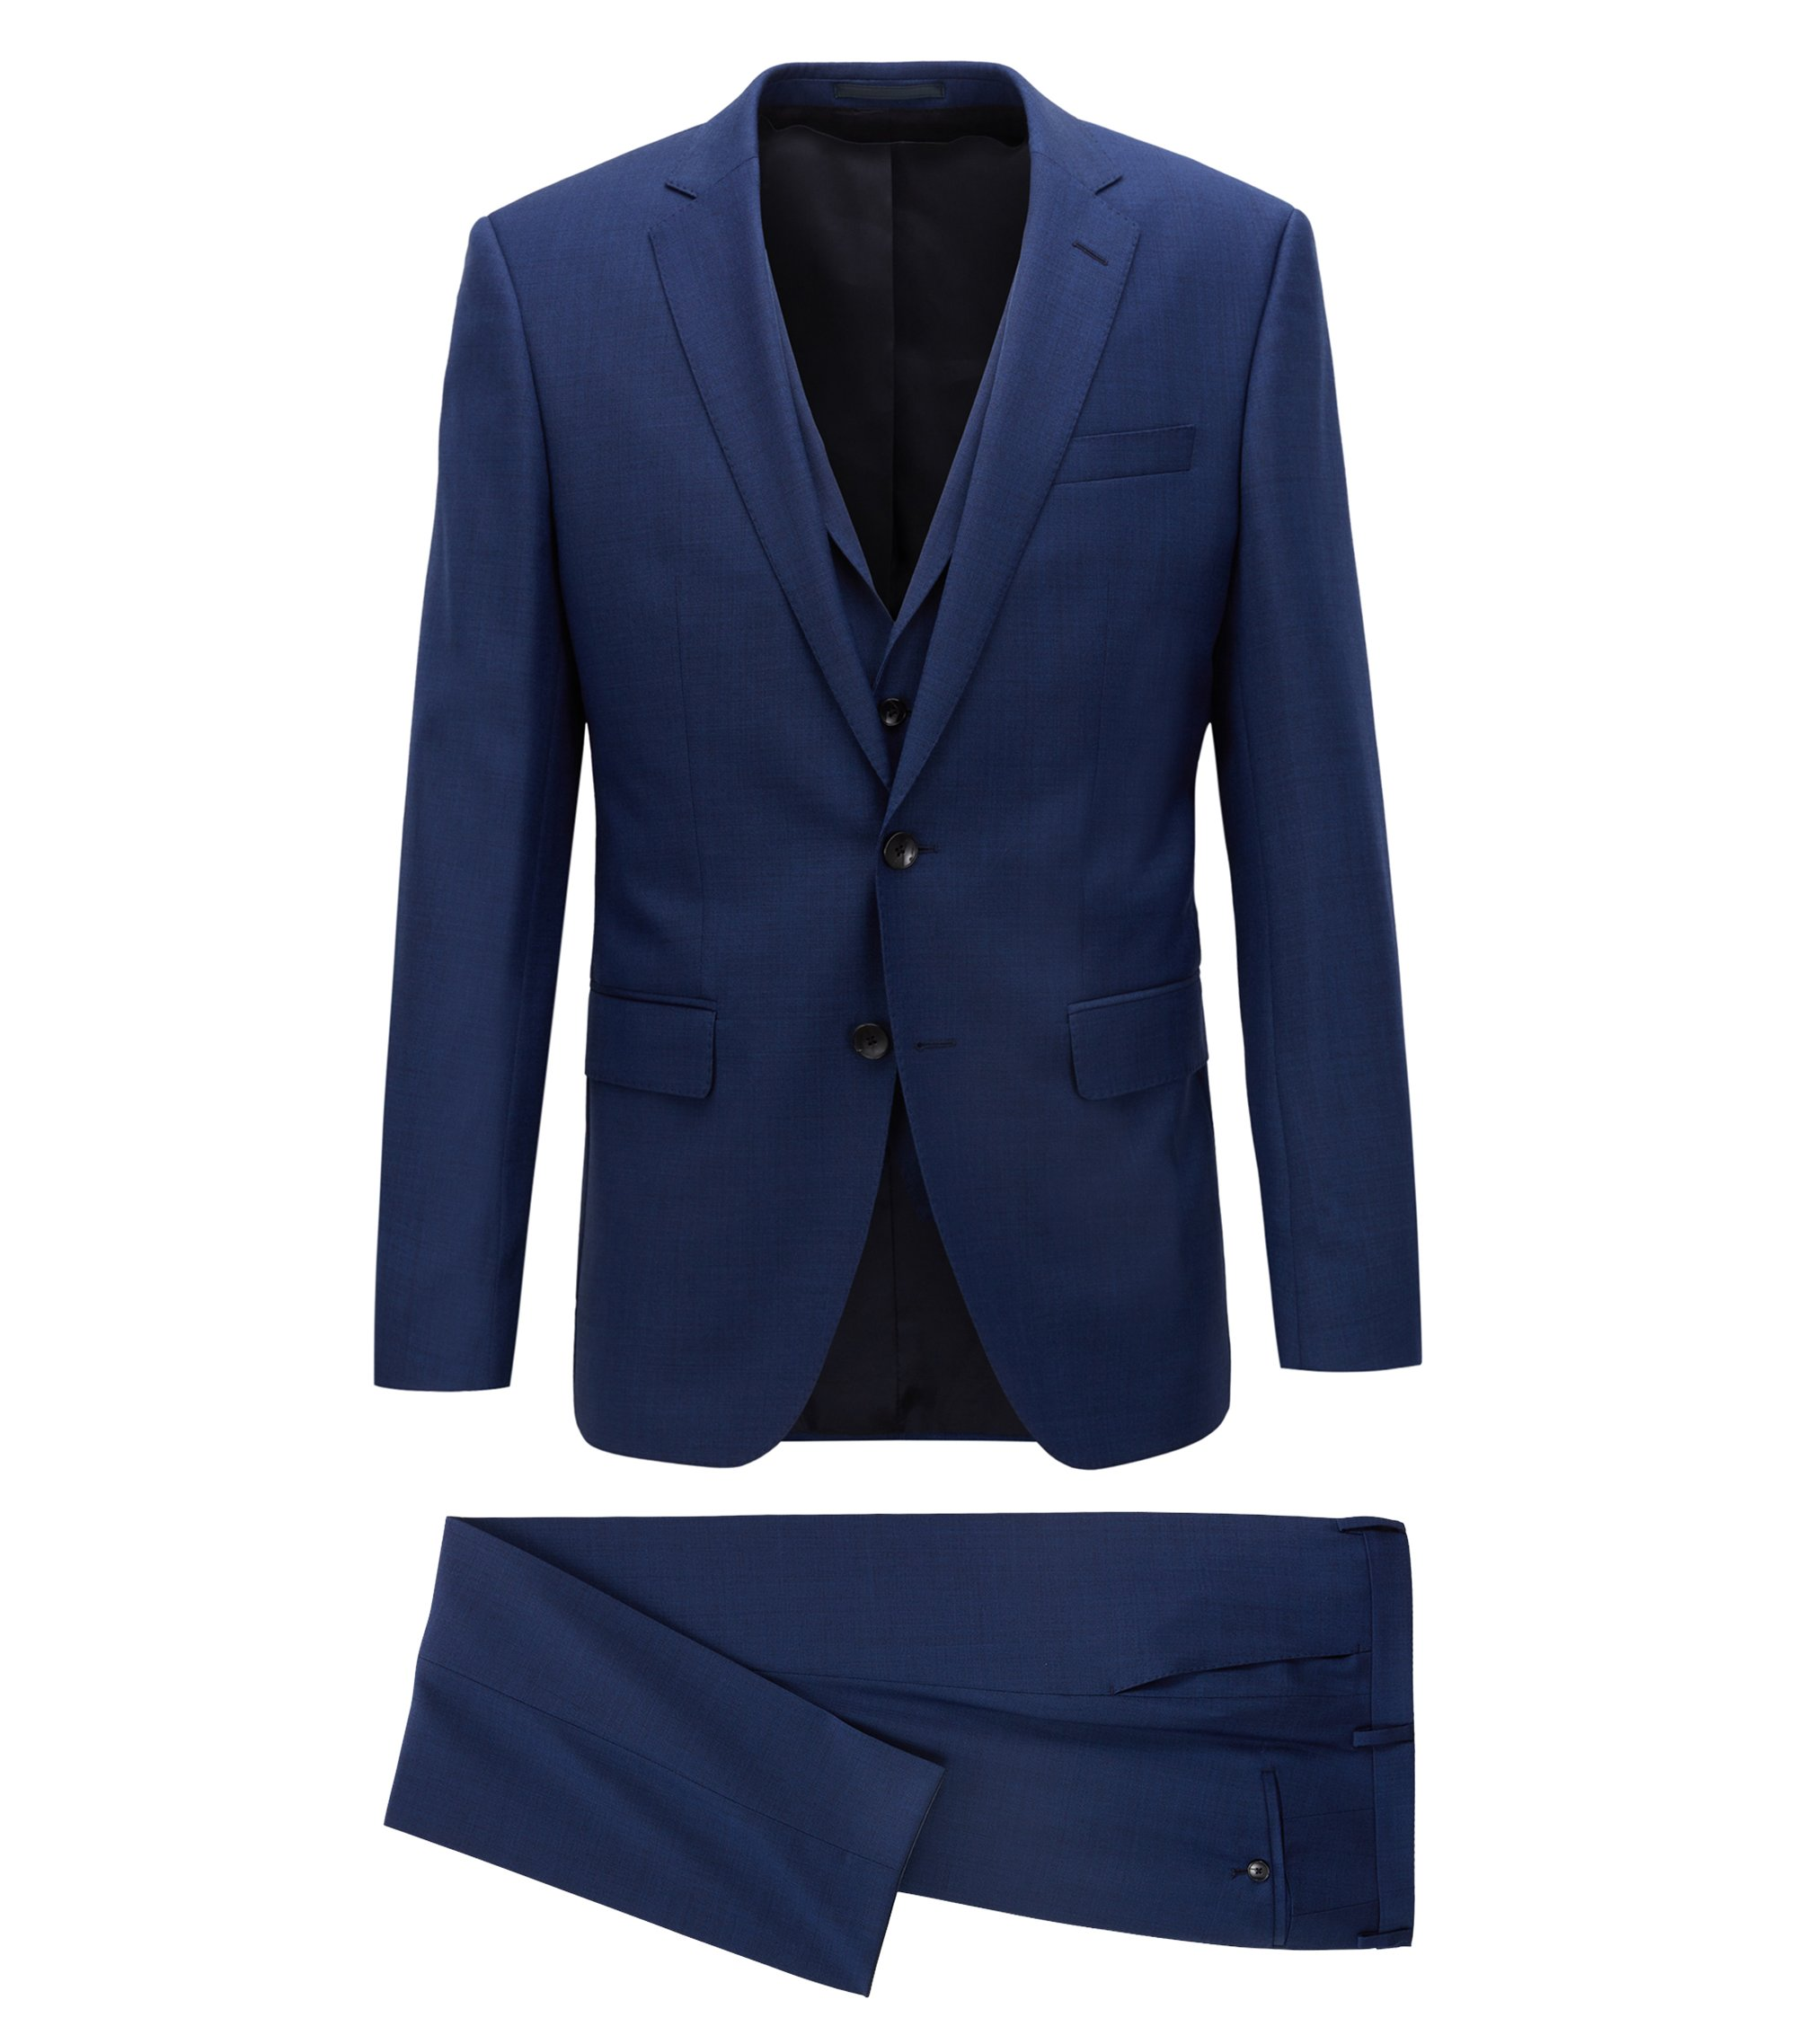 Abito slim fit con gilet in lana vergine serge, Blu scuro